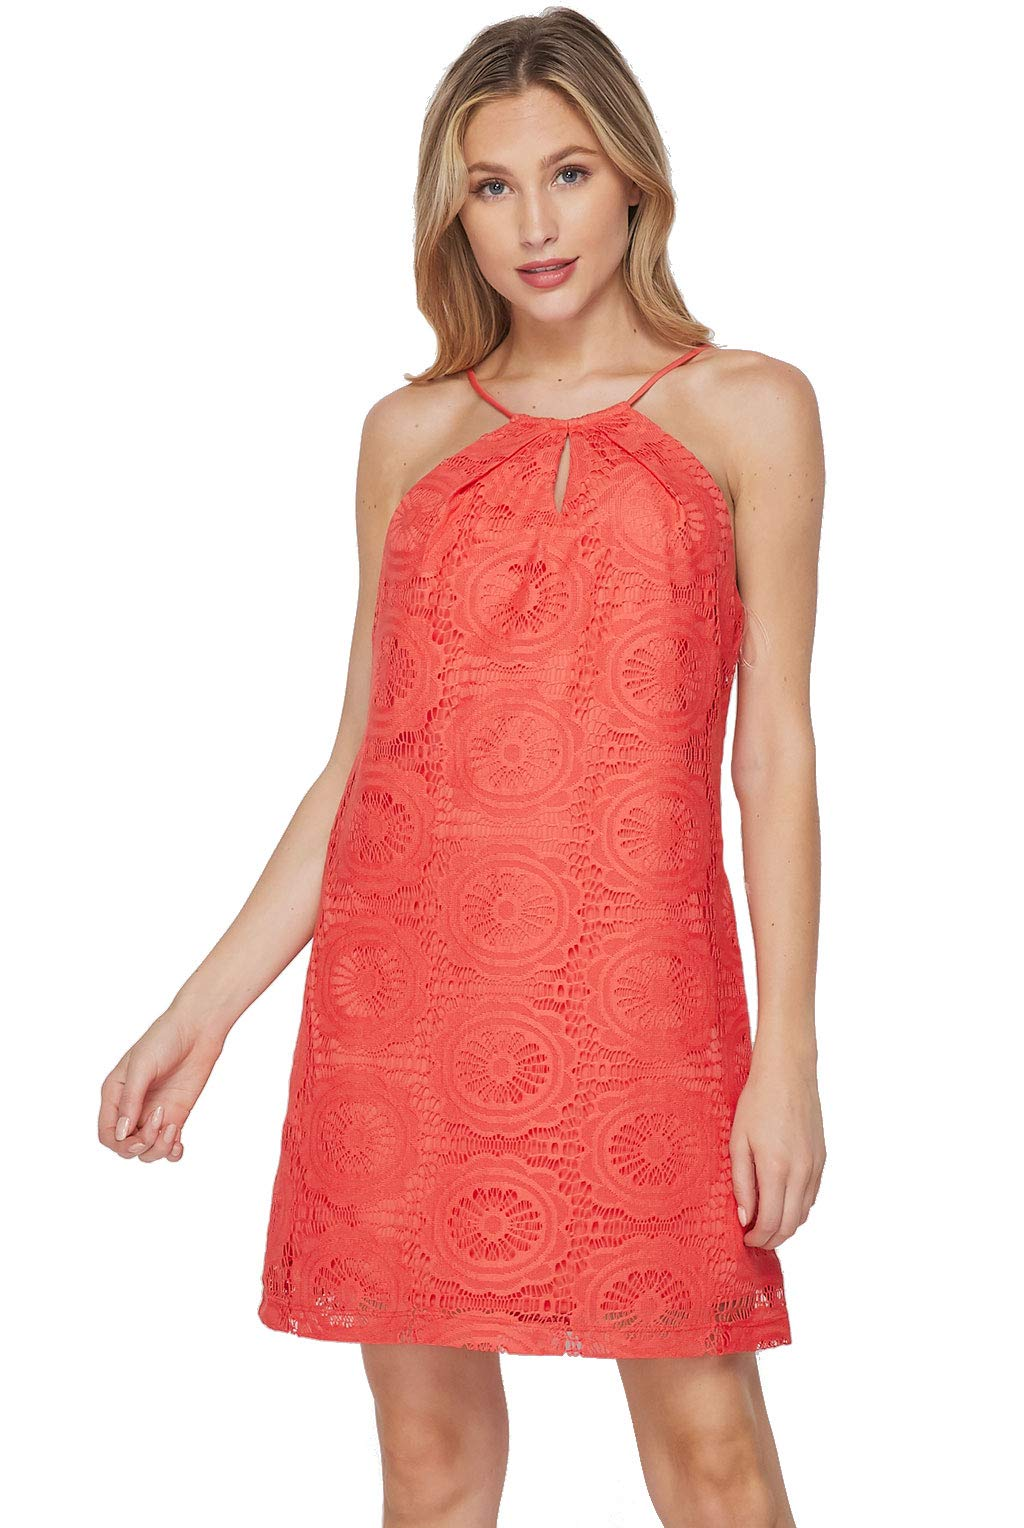 Available at Amazon: Teeze Me Women's Boho Halter Crochet Lace Shift Spring and Summer Shift Dress